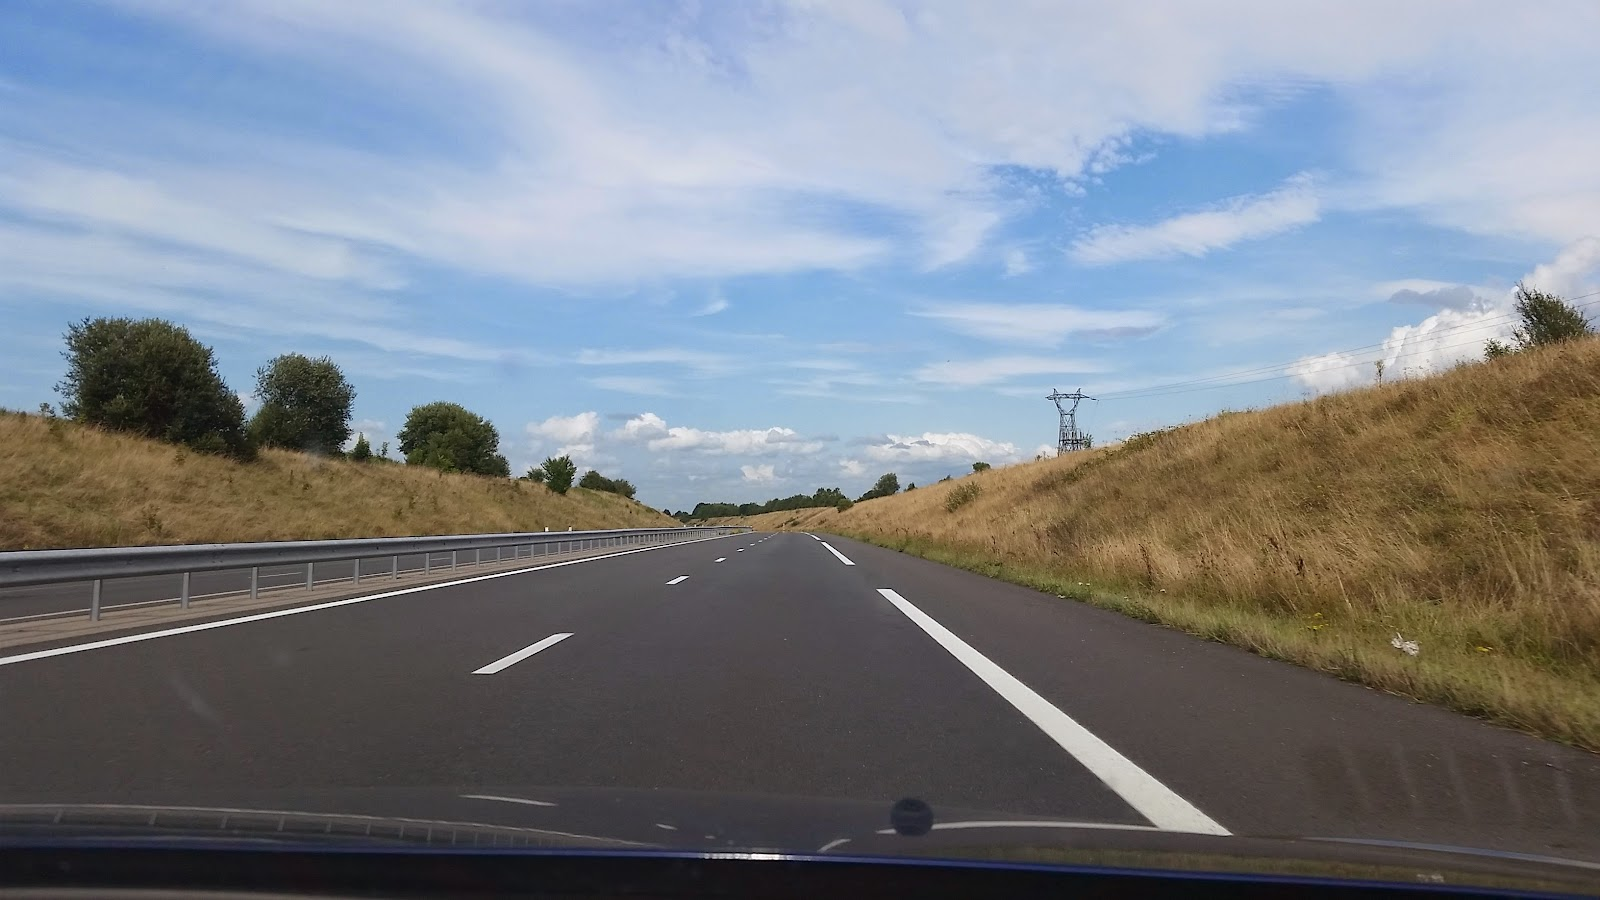 On the road again